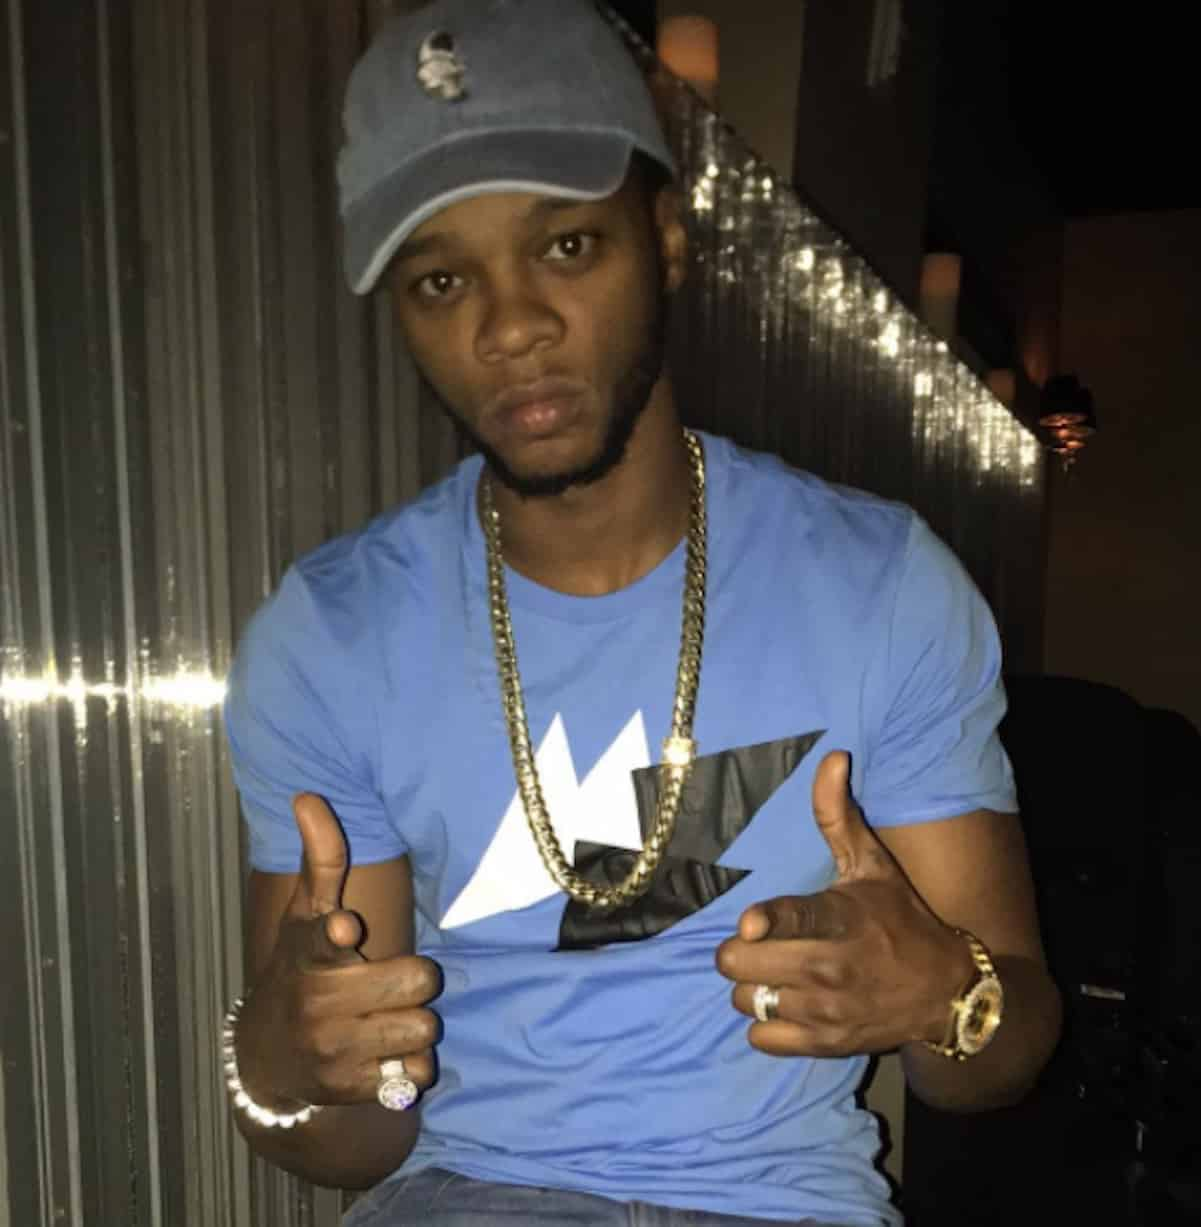 papoose fake baby mam exposed lying